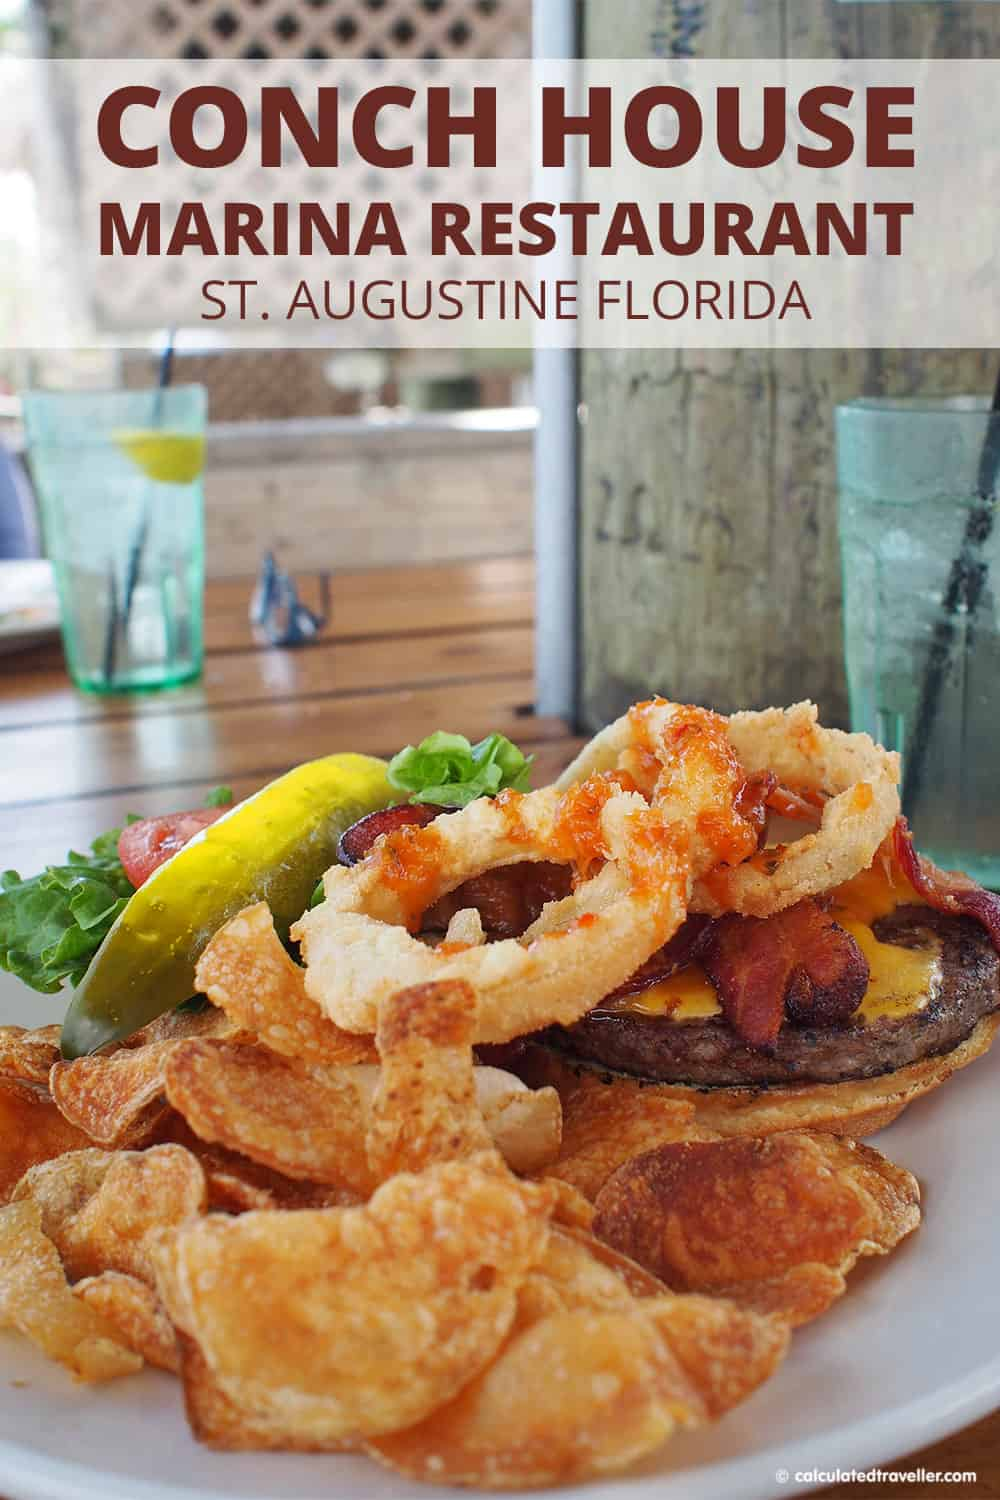 A Traveller's Guide to St Augustine Florida - History and Fun. Conch House Marina Restaurant is a great place with fresh seafood right on the waterfront. #StAugustine #Florida #marina #seafood #resturant